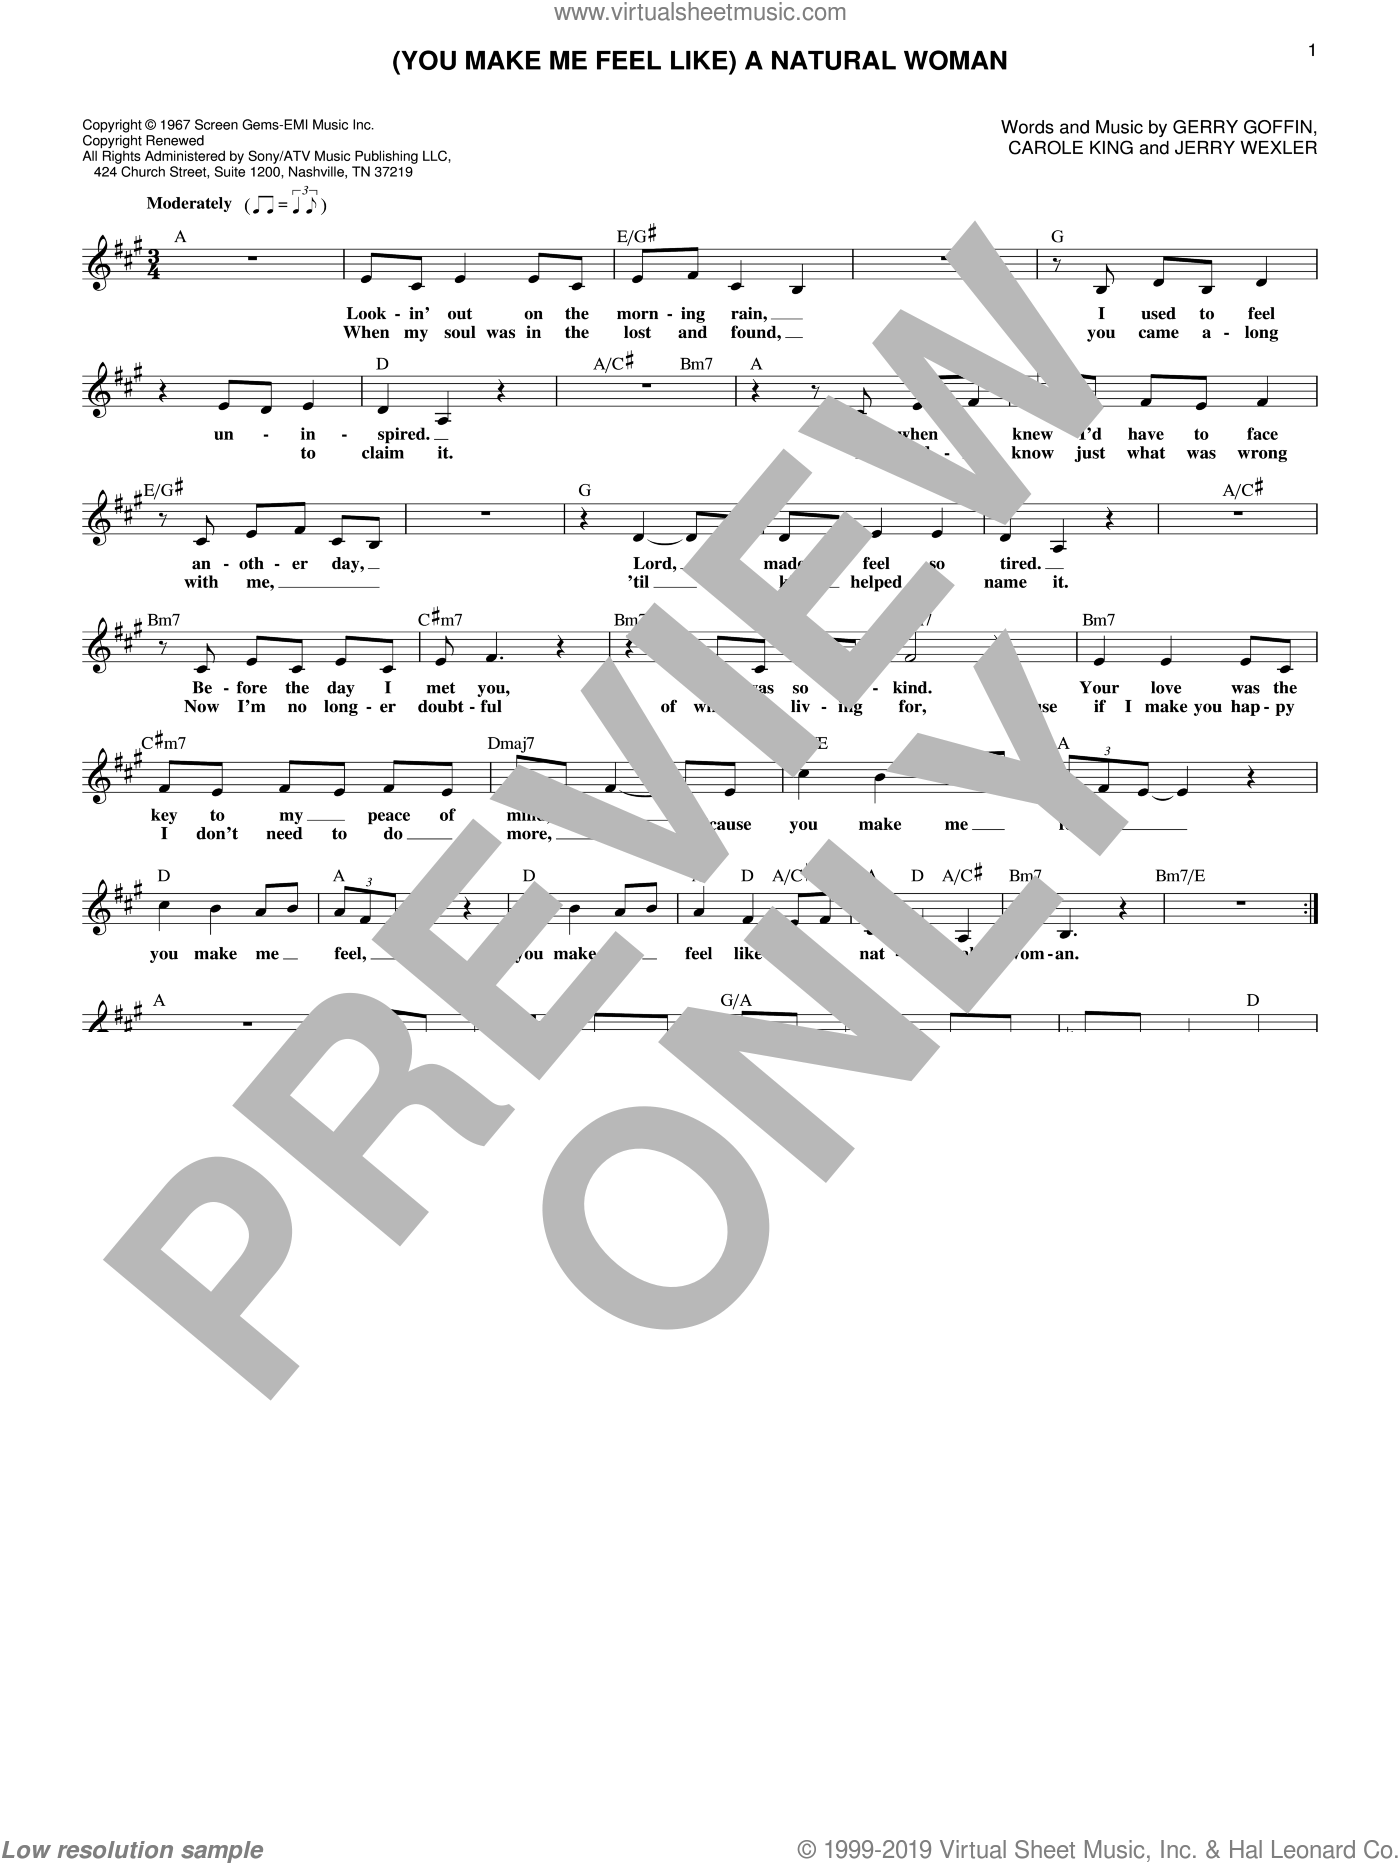 (You Make Me Feel Like) A Natural Woman sheet music for voice and other instruments (fake book) by Aretha Franklin, Gerry Goffin and Jerry Wexler, wedding score, intermediate skill level